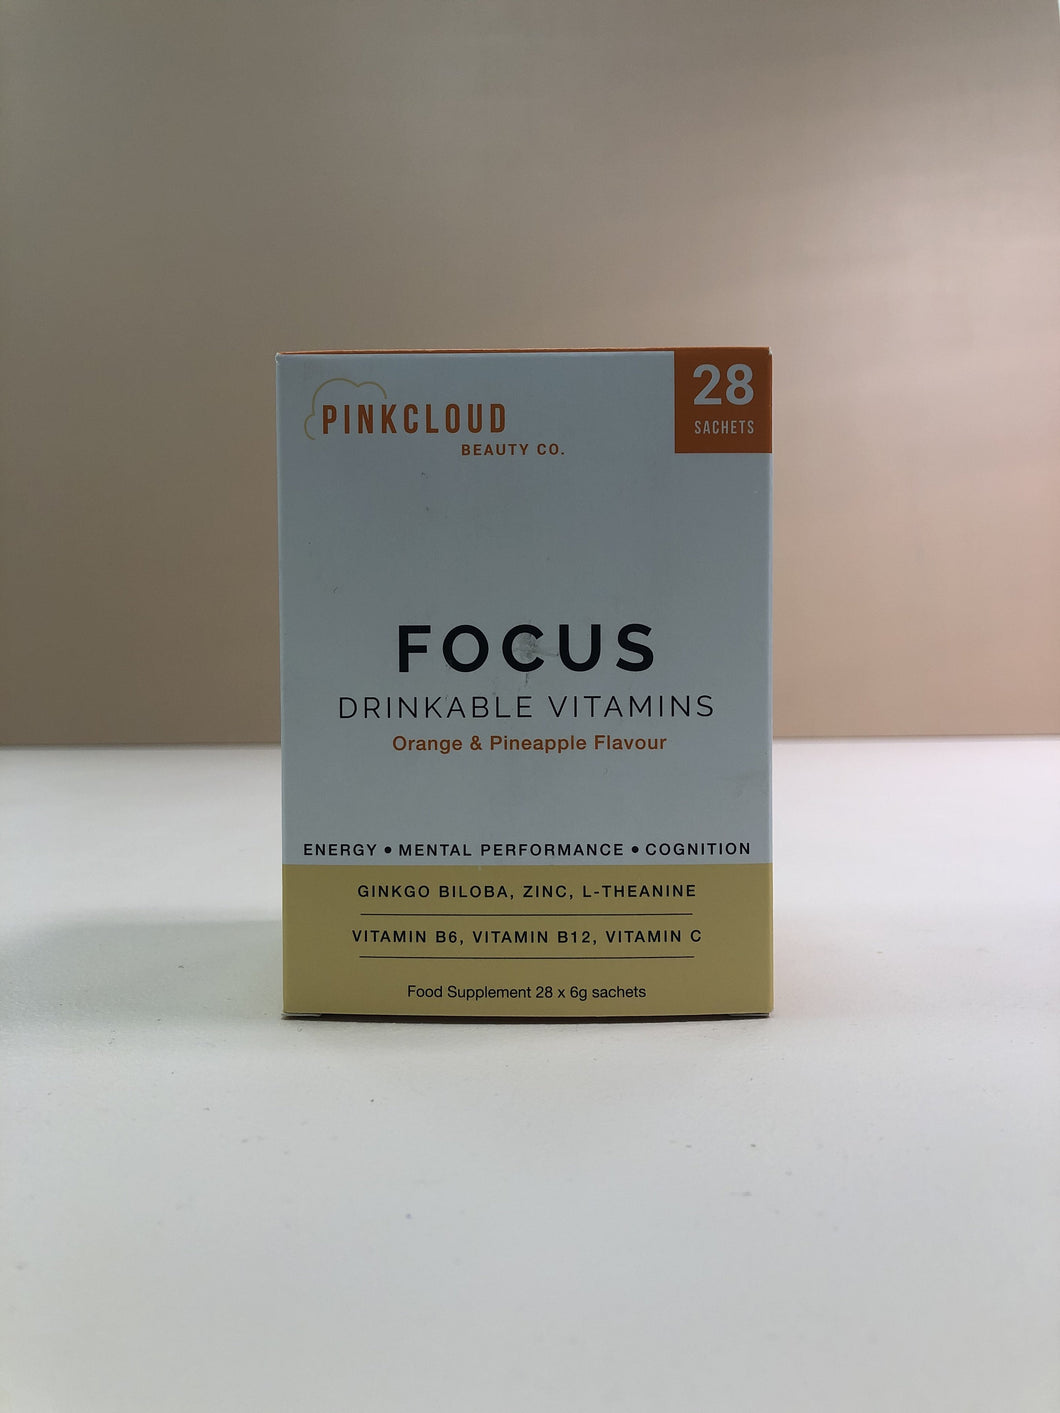 PinkCloud Beauty Co FOCUS - Front